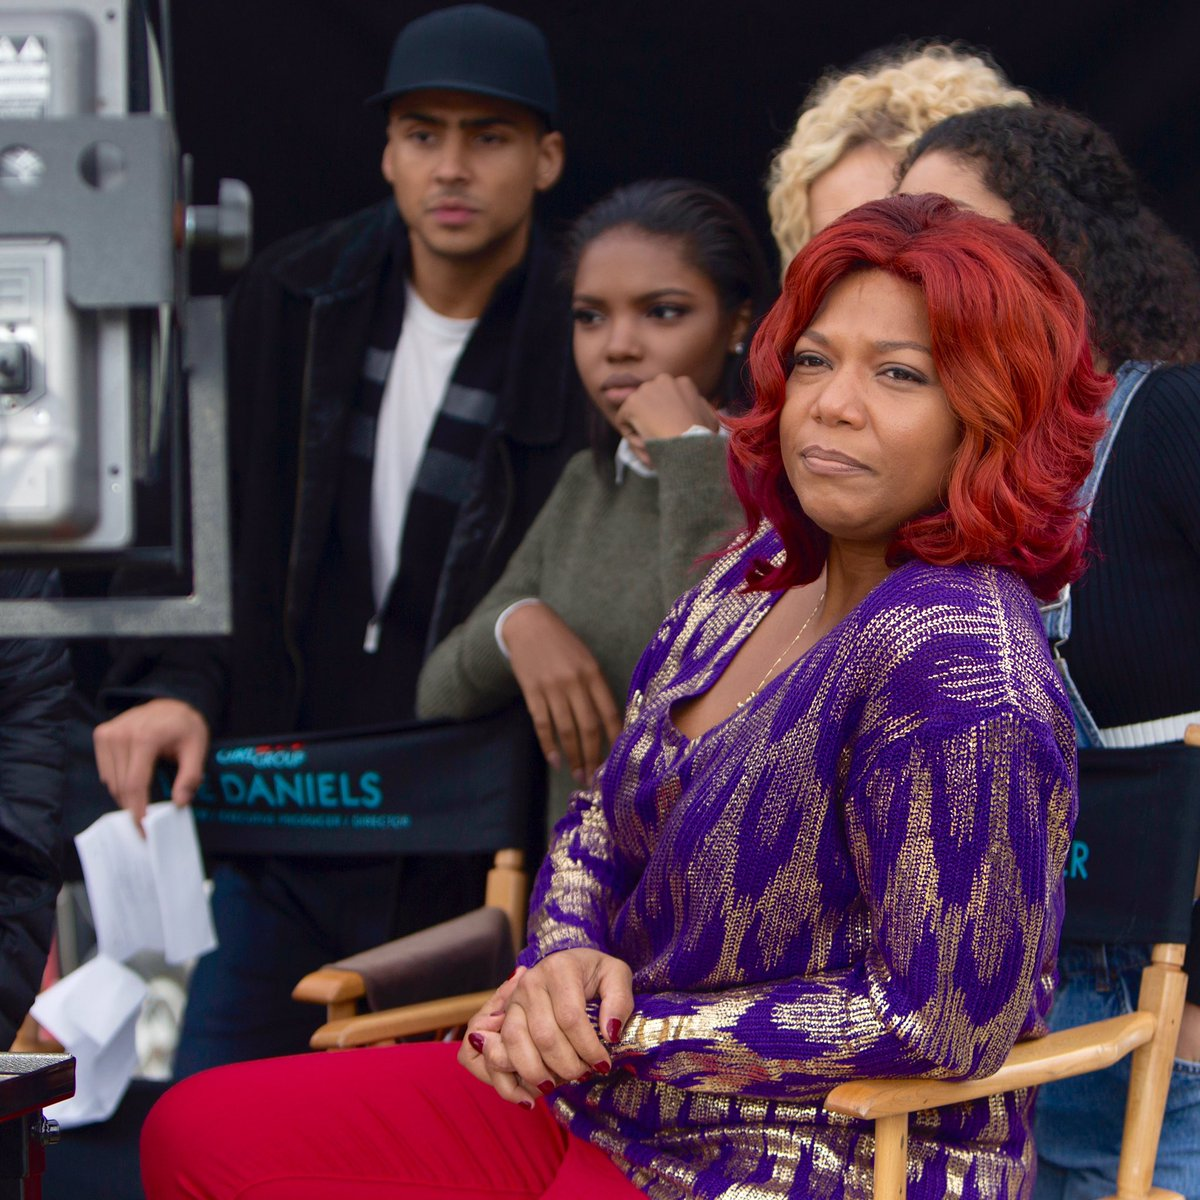 The BIG day is finally here! My new show @STAR premieres tonight at 9/8c on FOX after the #Empire finale. XOXO https://t.co/DSPj5ND5Bc